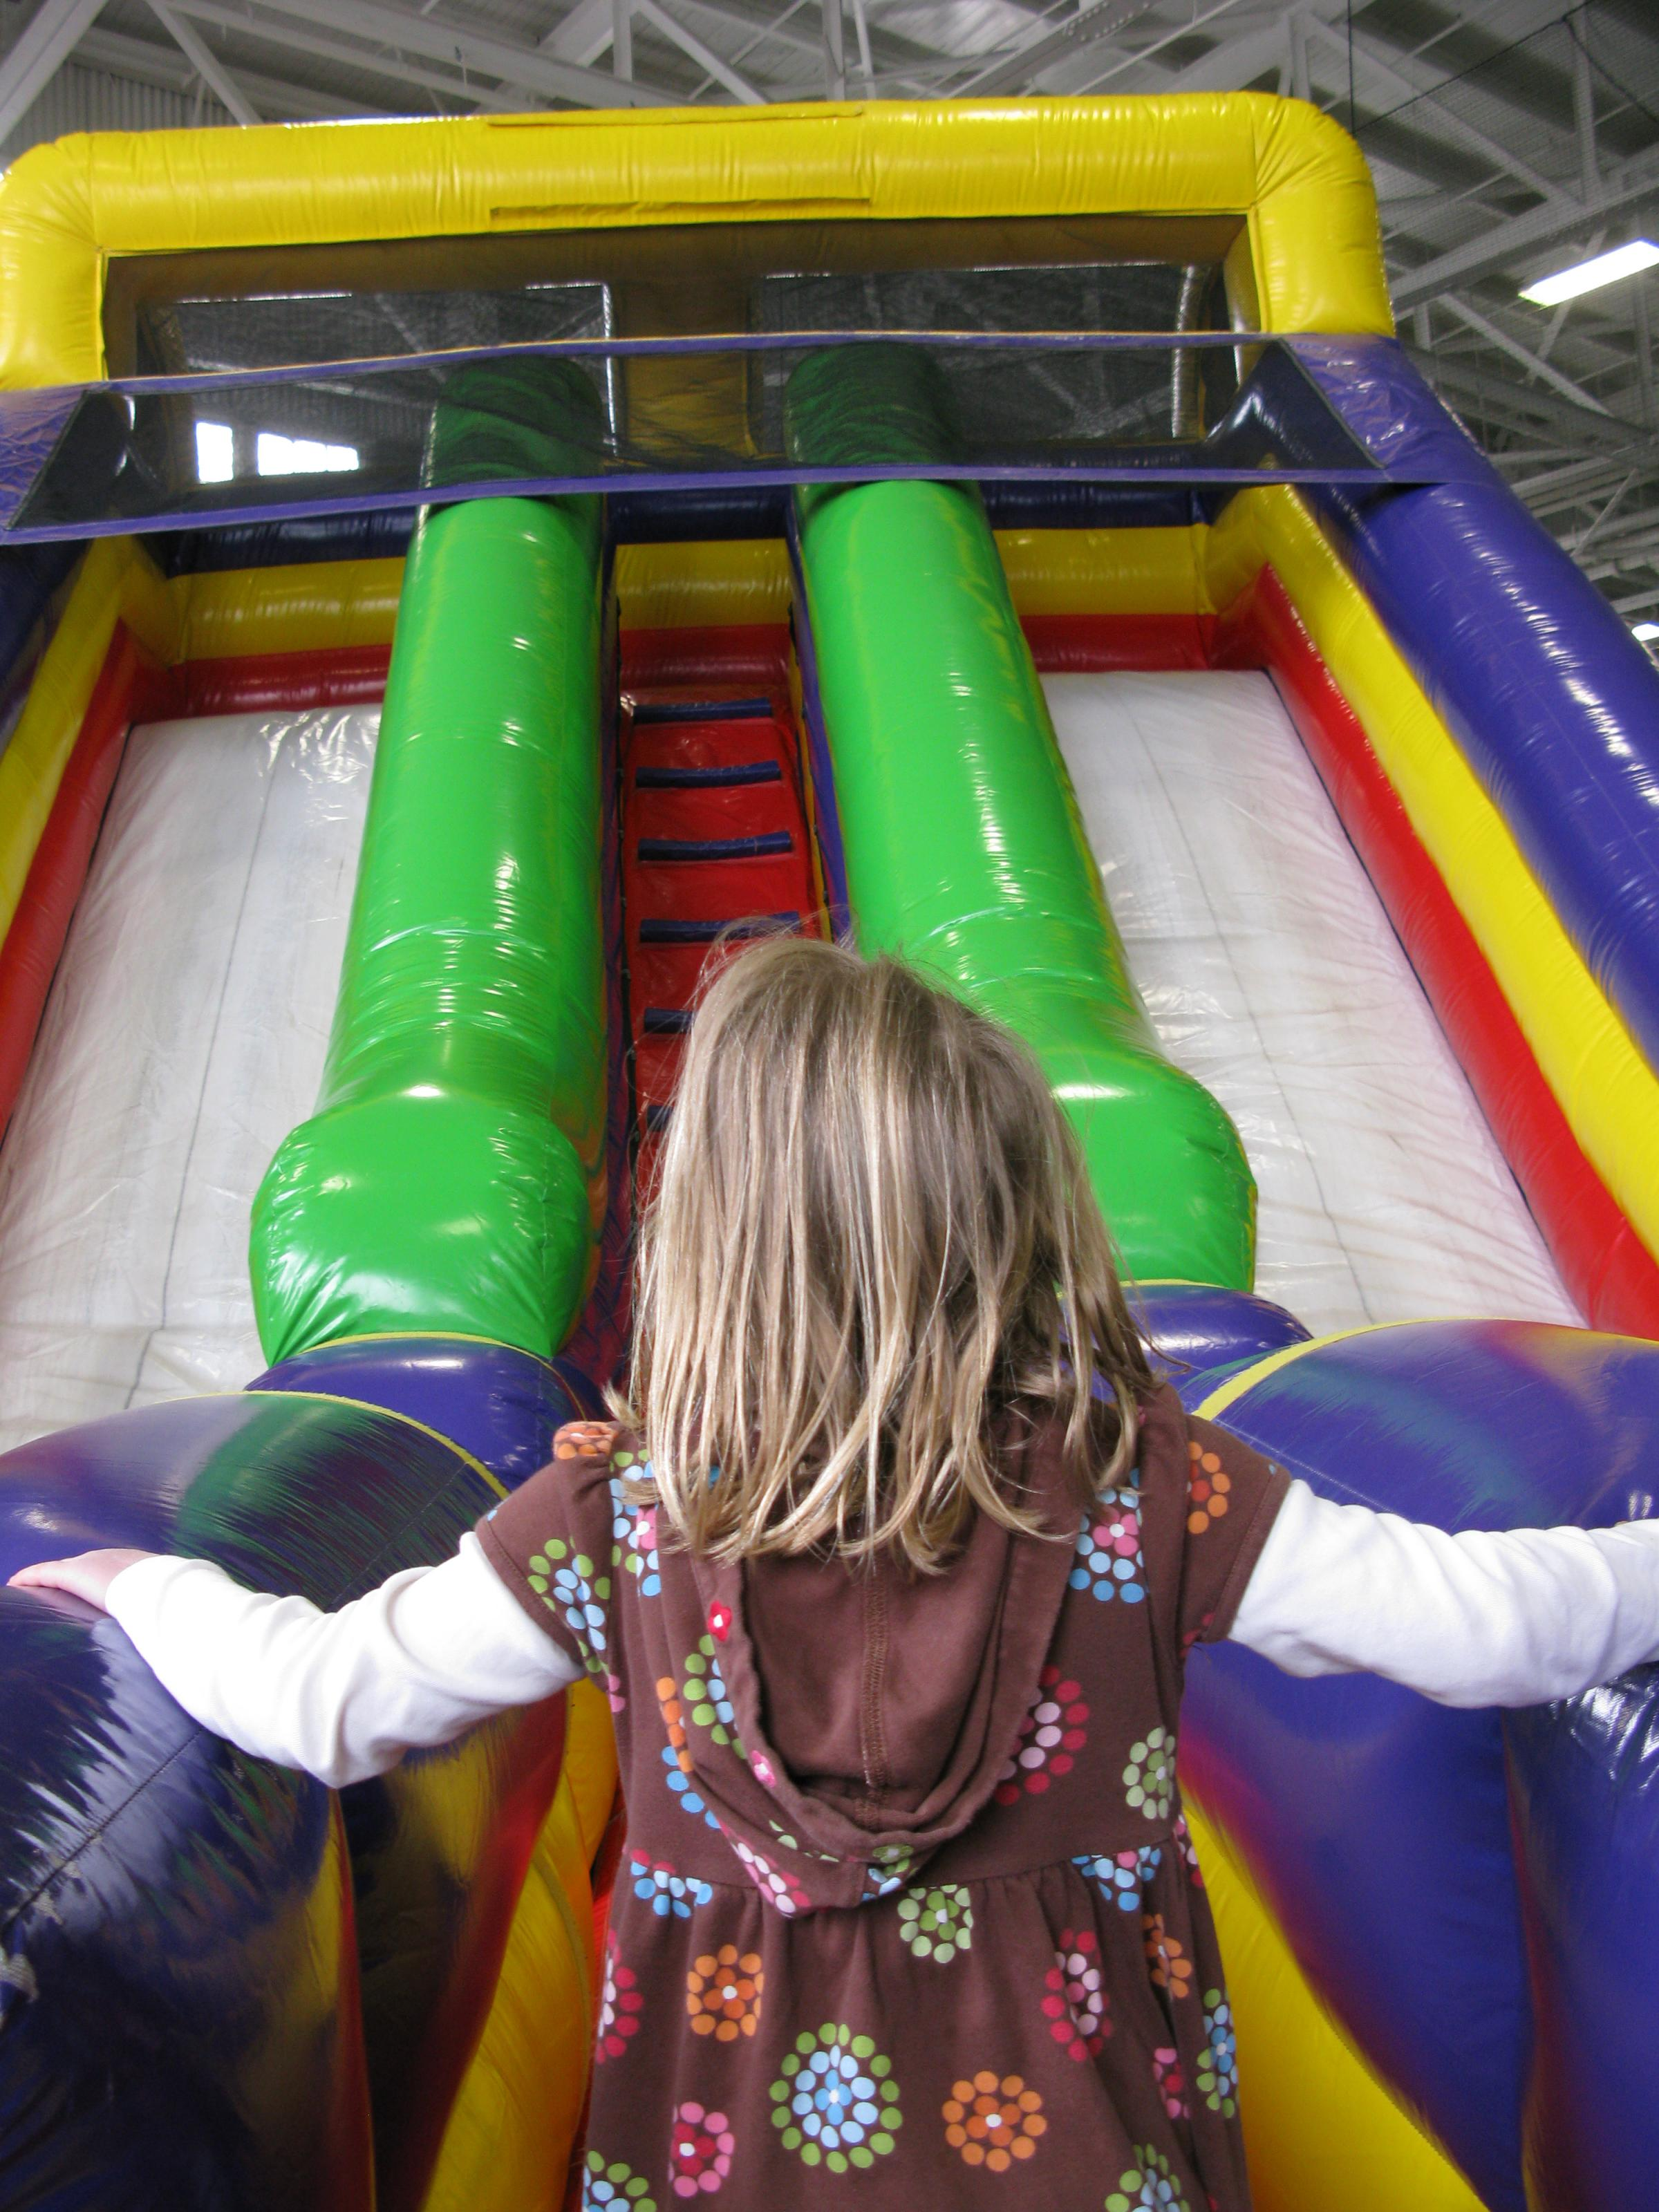 Bouncy House Rules Wash Bans Them From Child Care